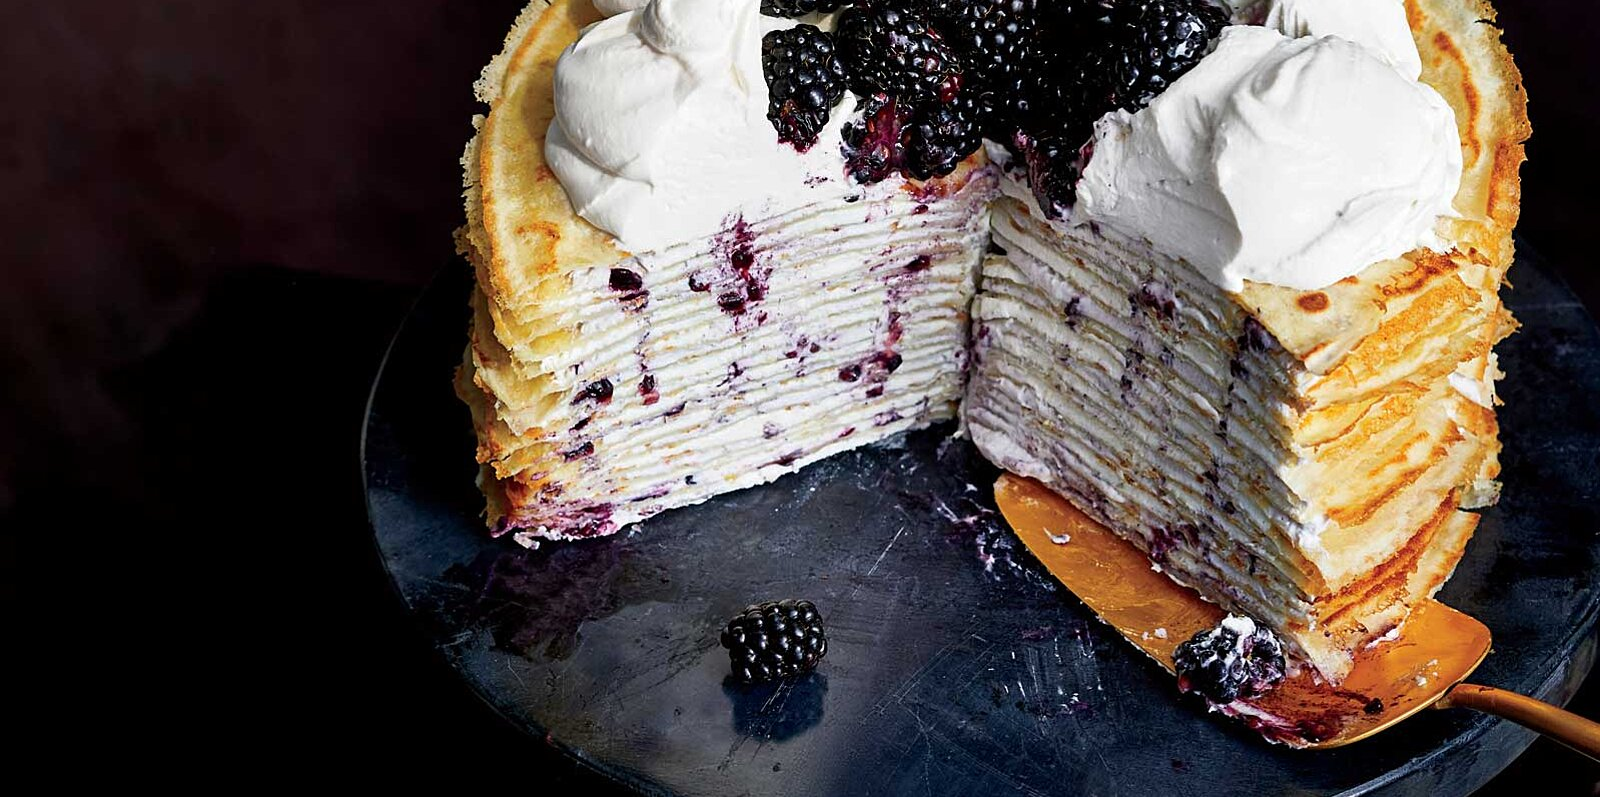 22 Mascarpone Recipes That Aren't Tiramisu